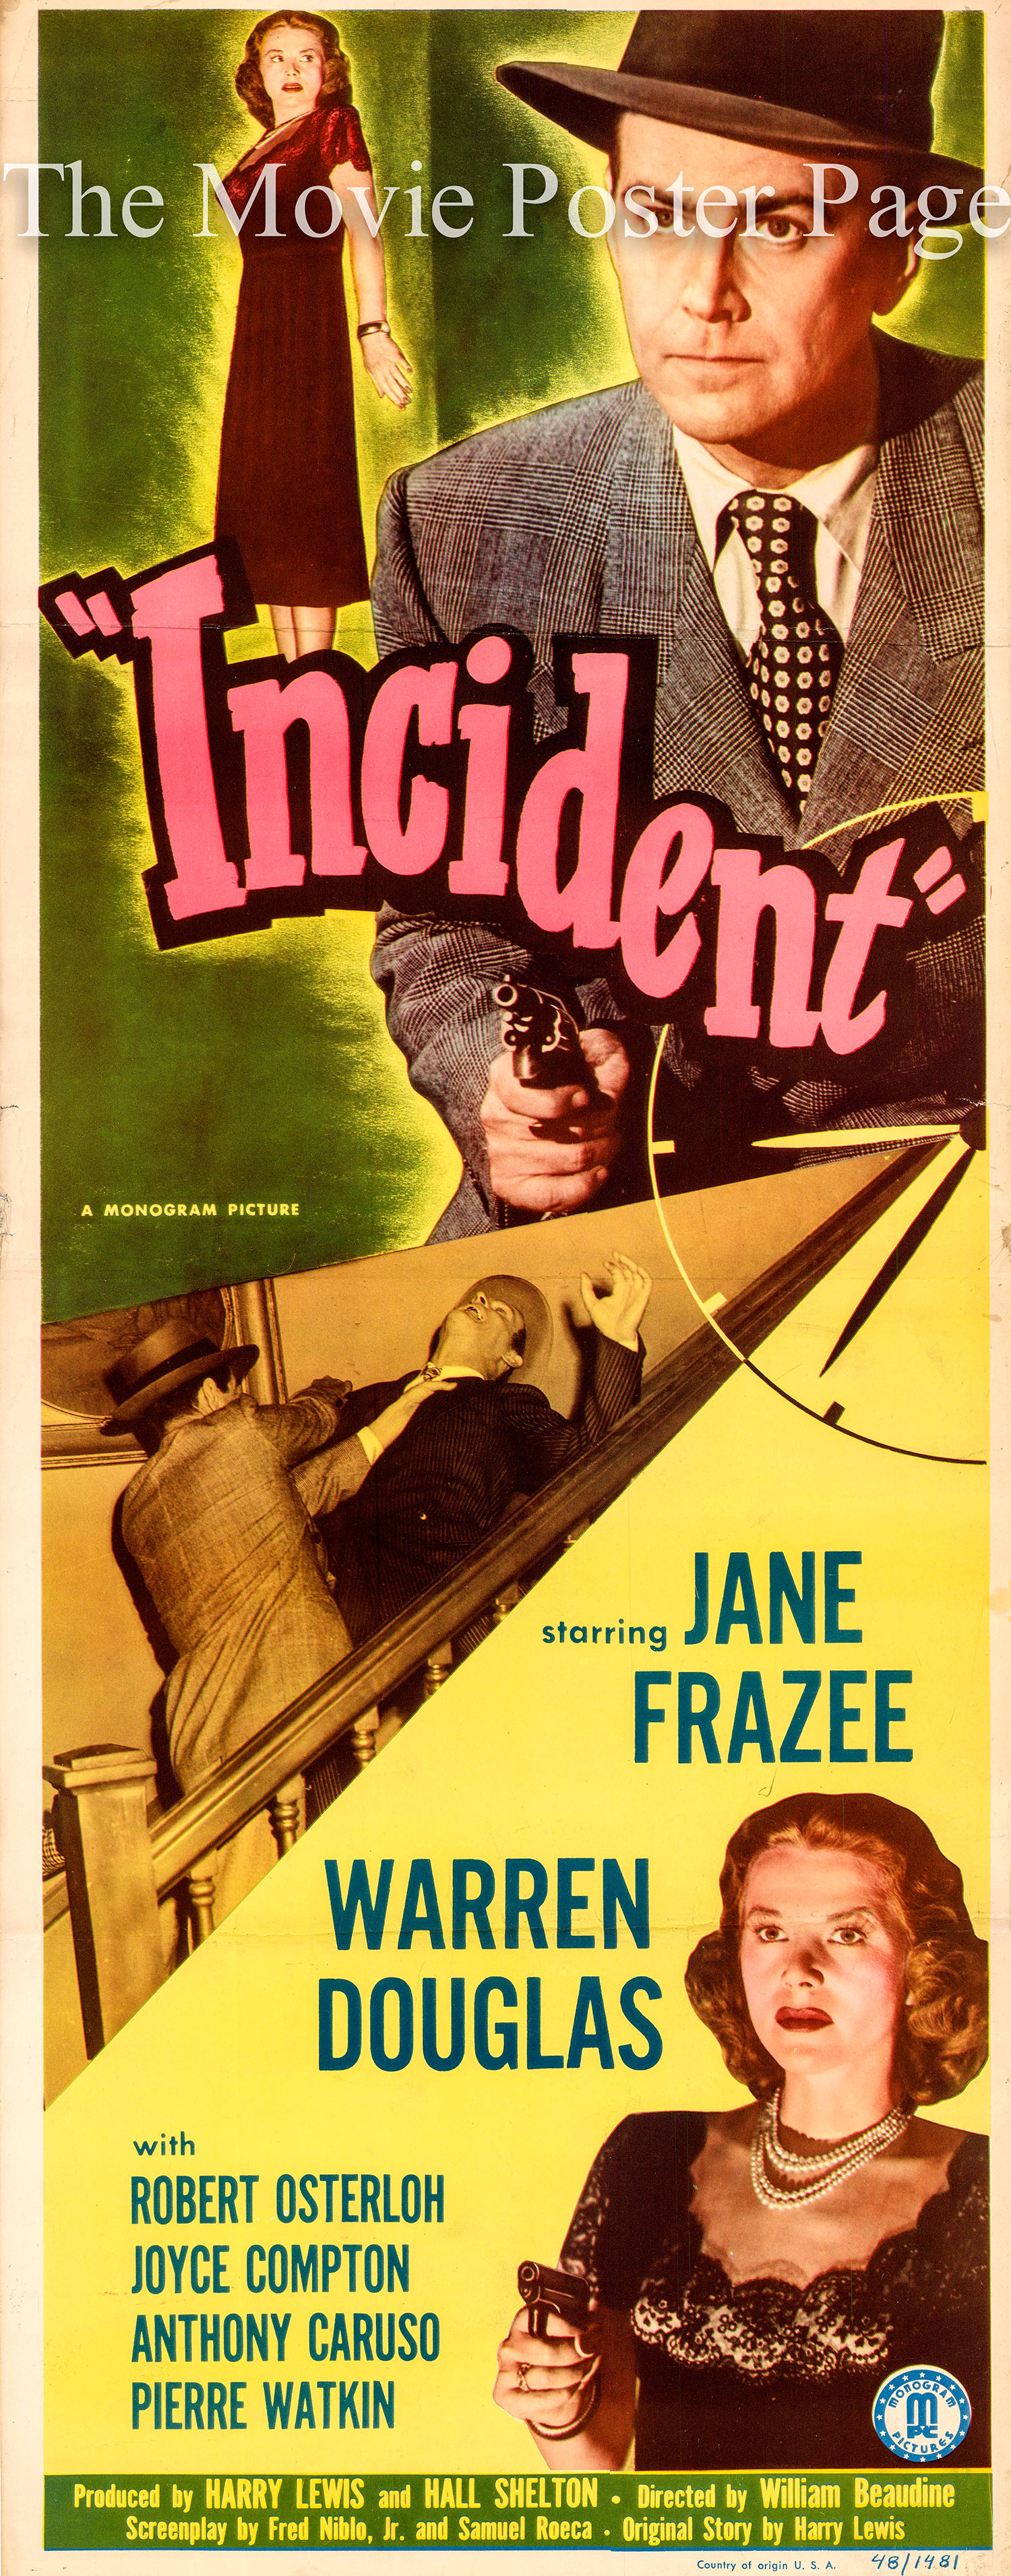 Pictured is a US insert promotional poster for the 1948 William Beaudine film Incident starring Warren Douglas and Jane Frazee.